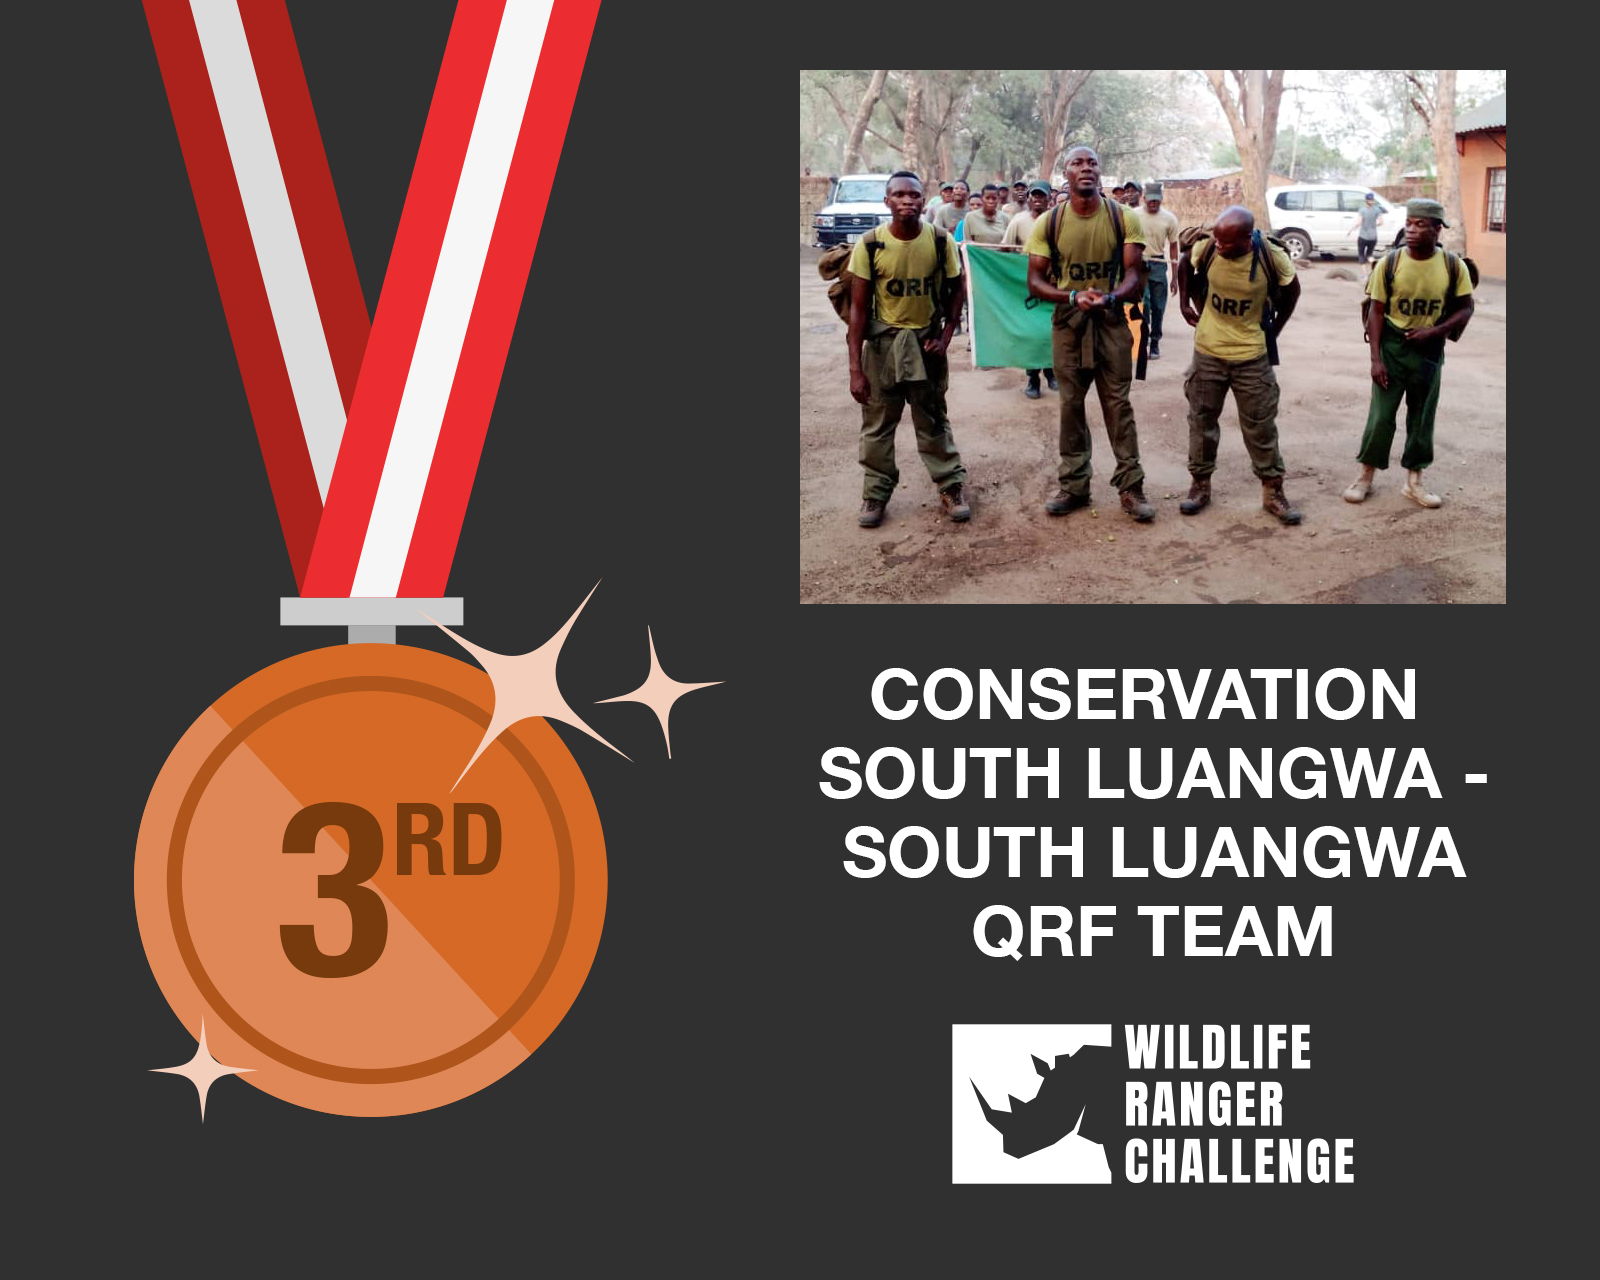 Conservation South Luangwa - South Luangwa QRF Team